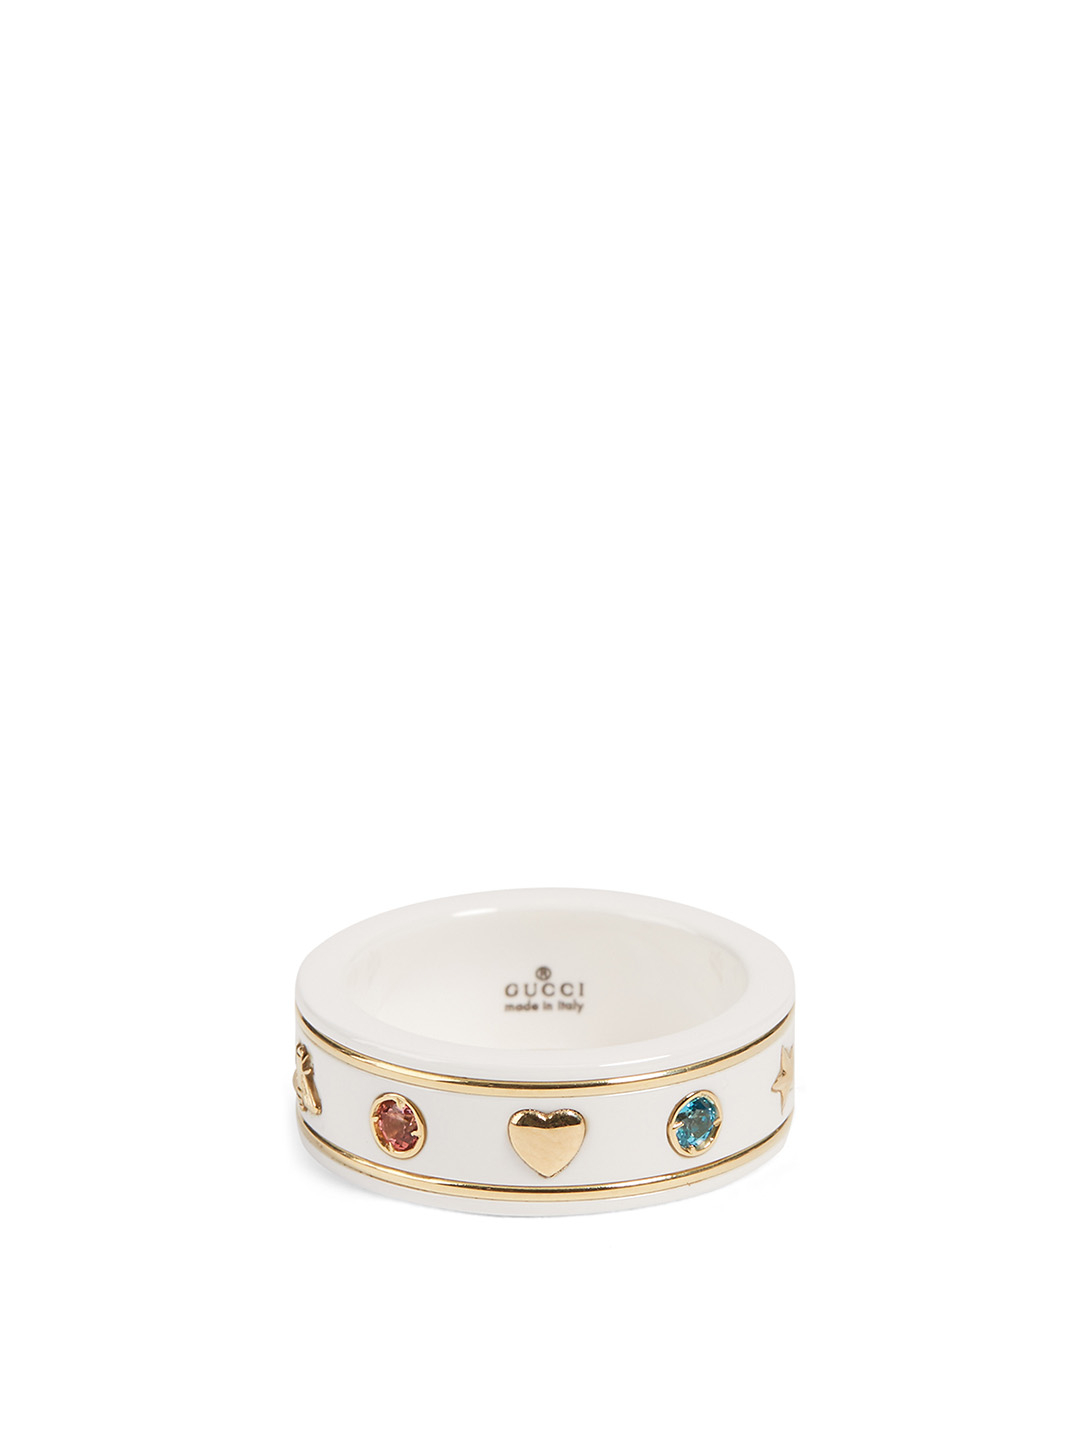 GUCCI Icon 18K Gold Ring With Gemstones Women's Metallic